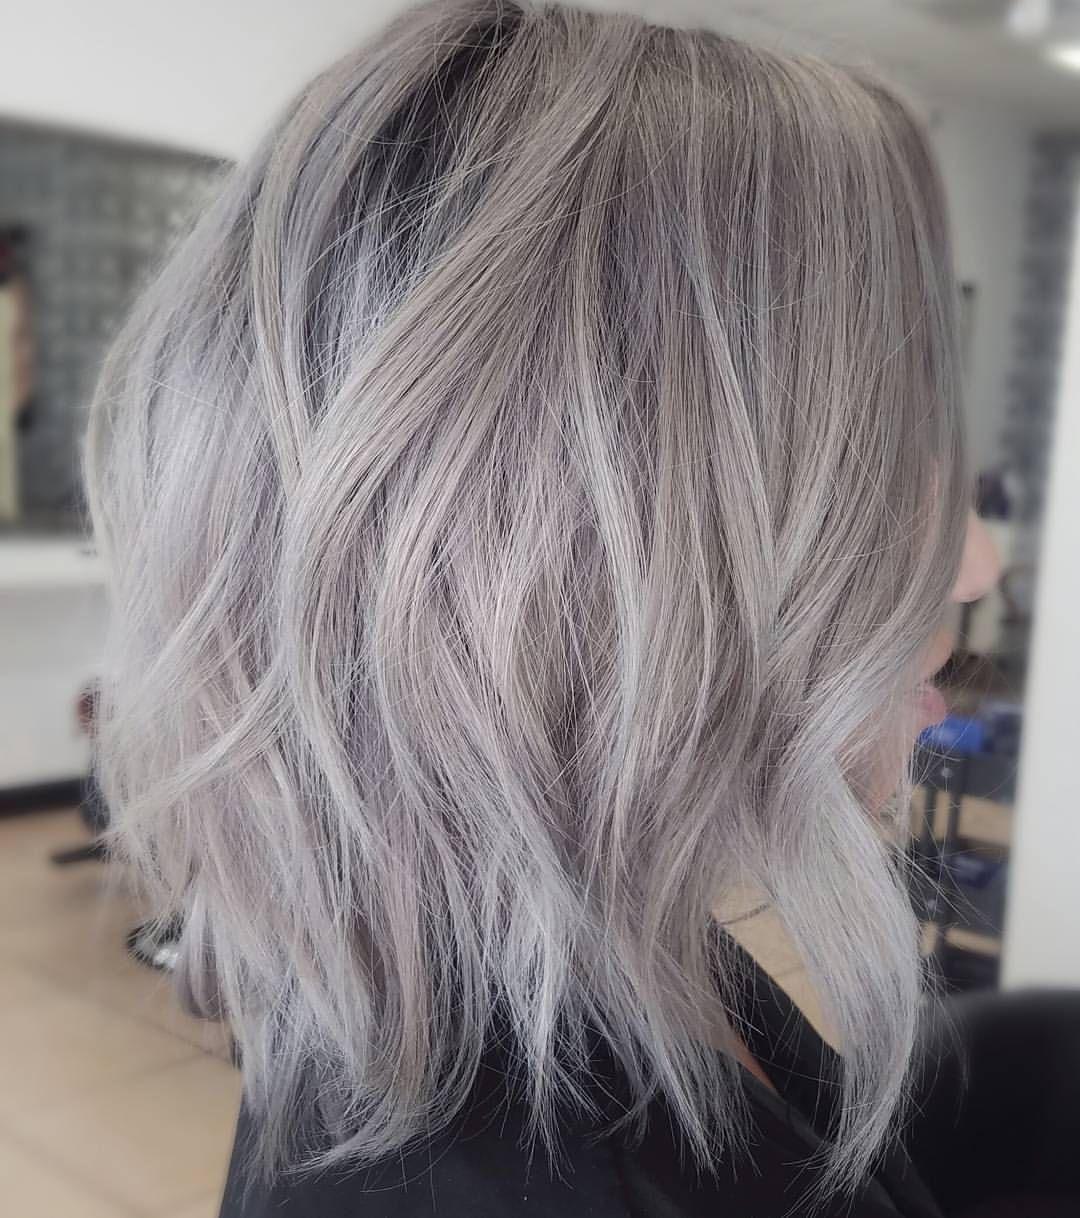 Amber fx new hairstyle in hair pinterest hair coloring